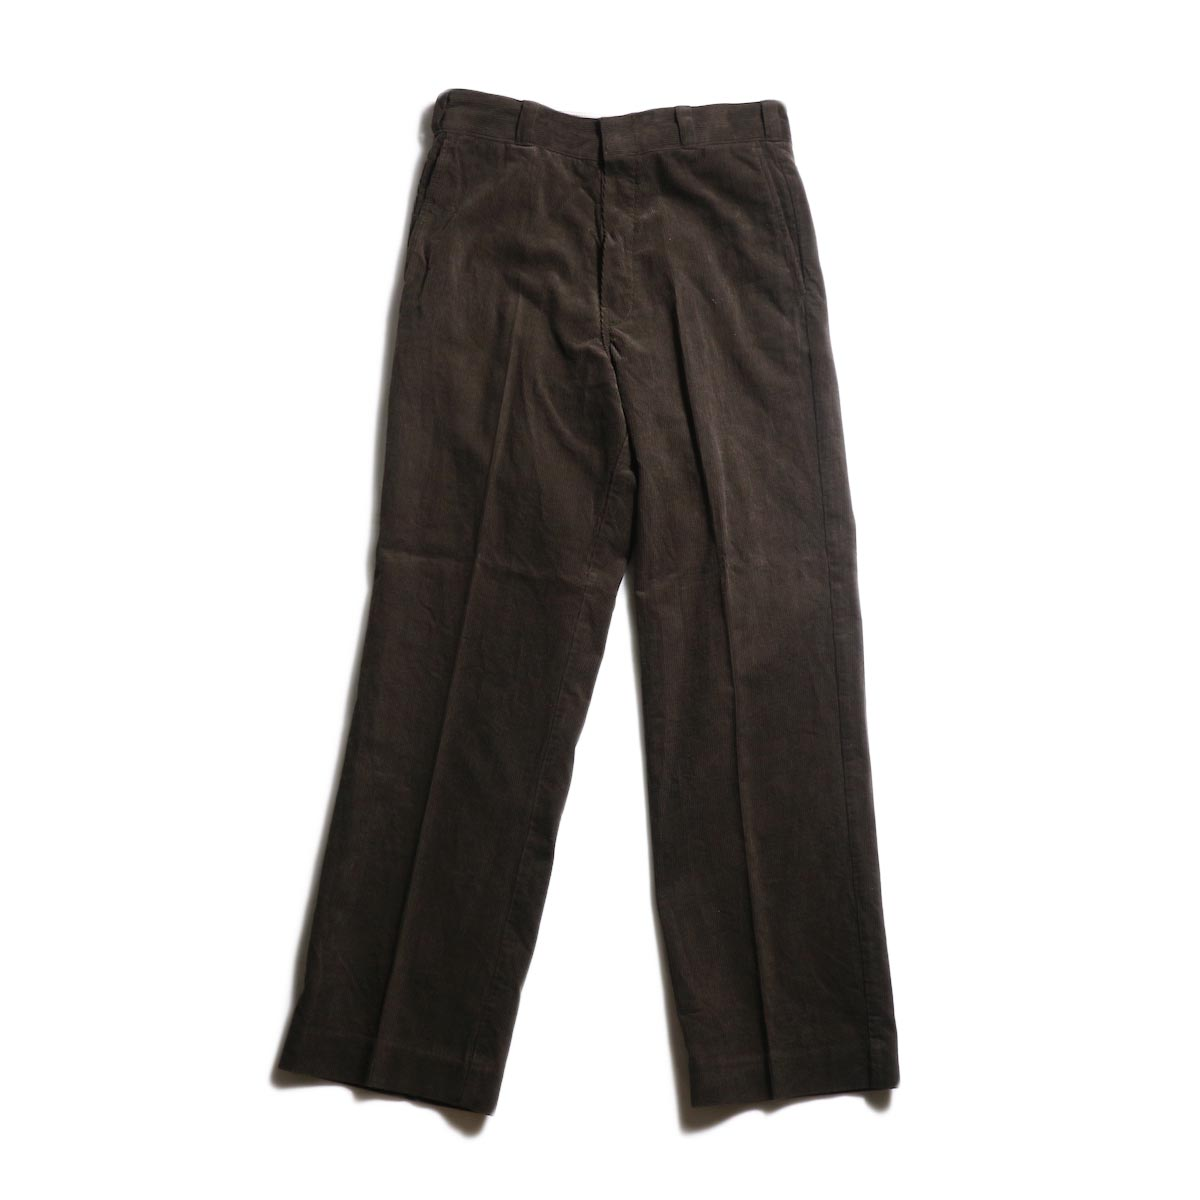 UNUSED × Dickies / UW0774 corduroy pant -Chocolate